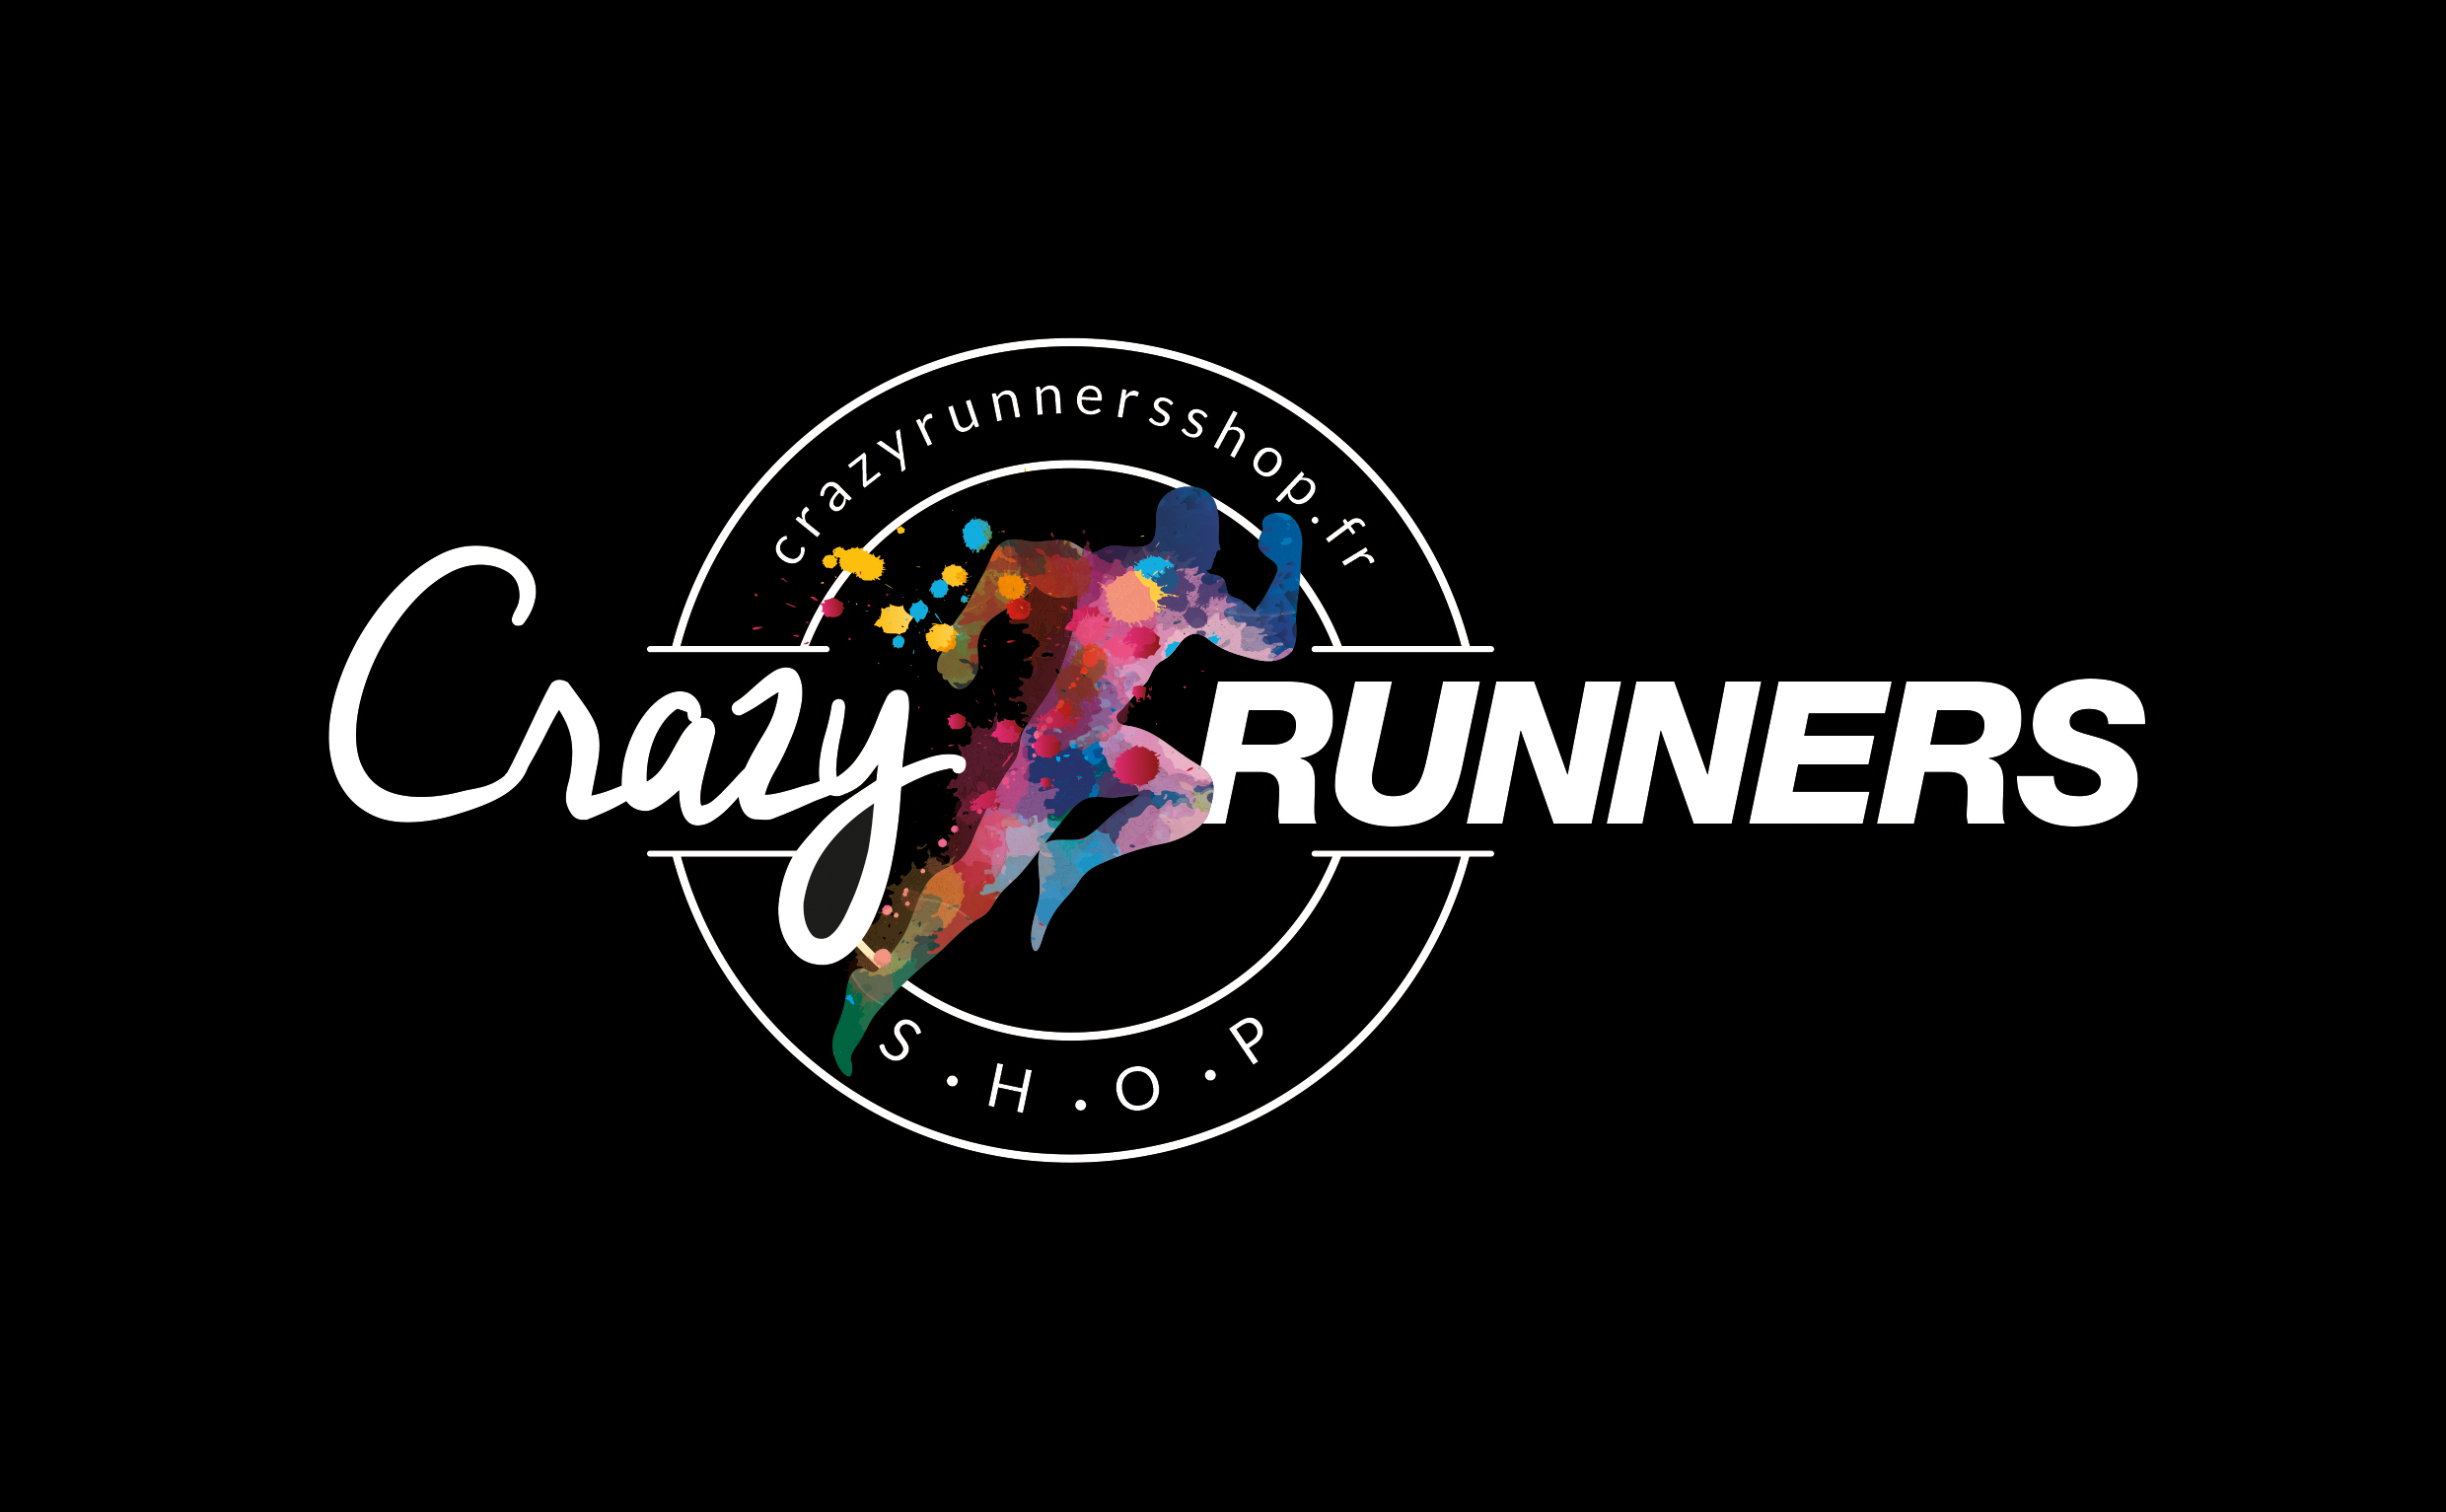 CRAZY RUNNERS SHOP